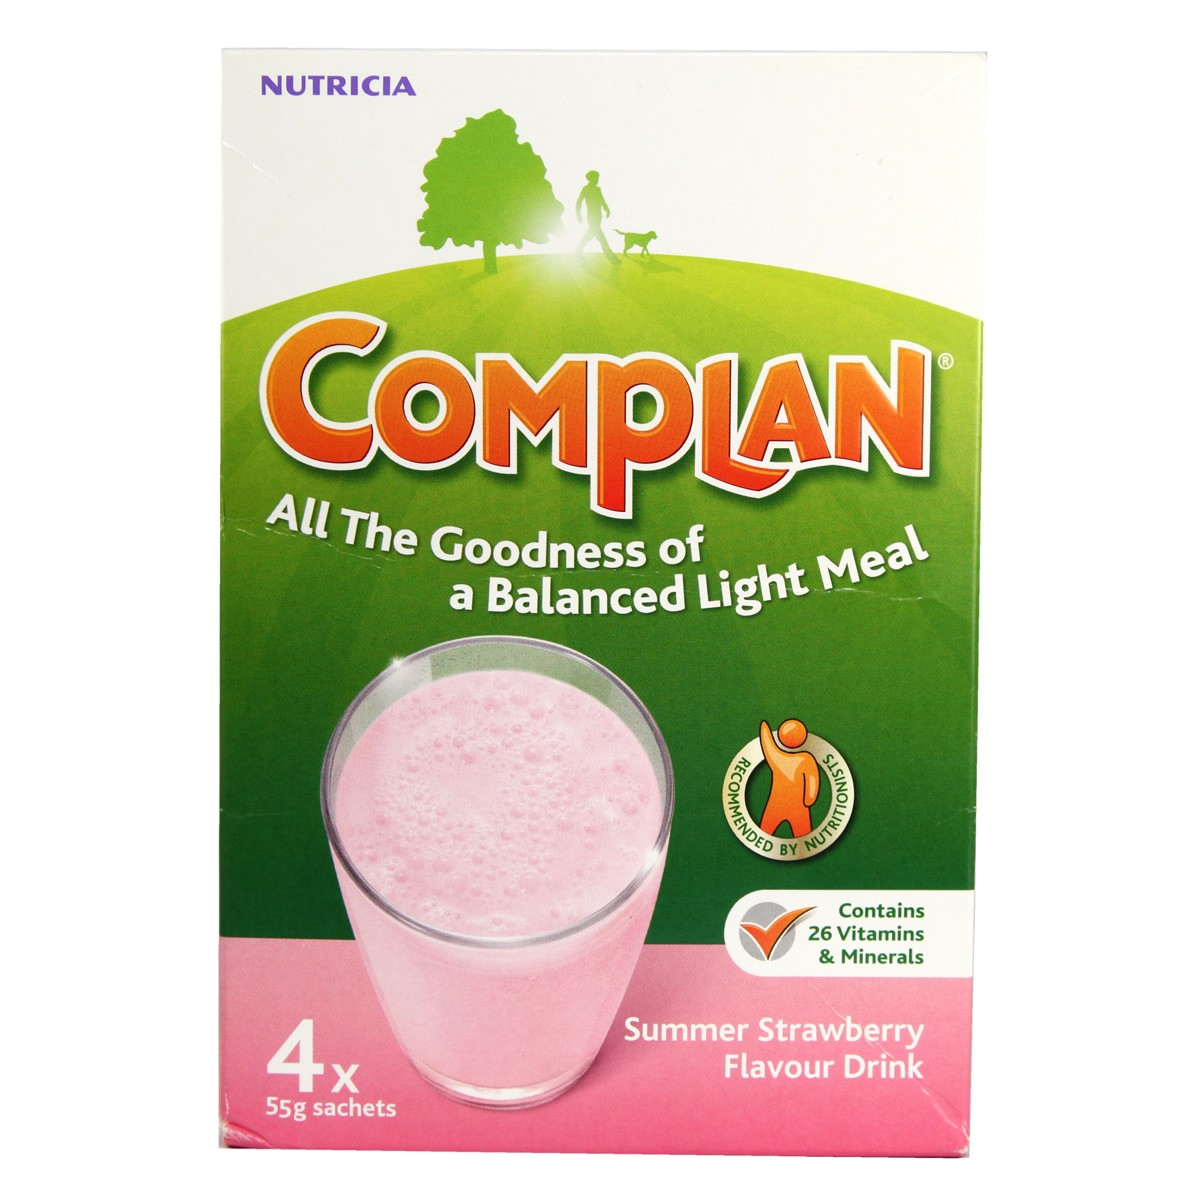 Complan Nutricia Summer Strawberry Flavour Drink